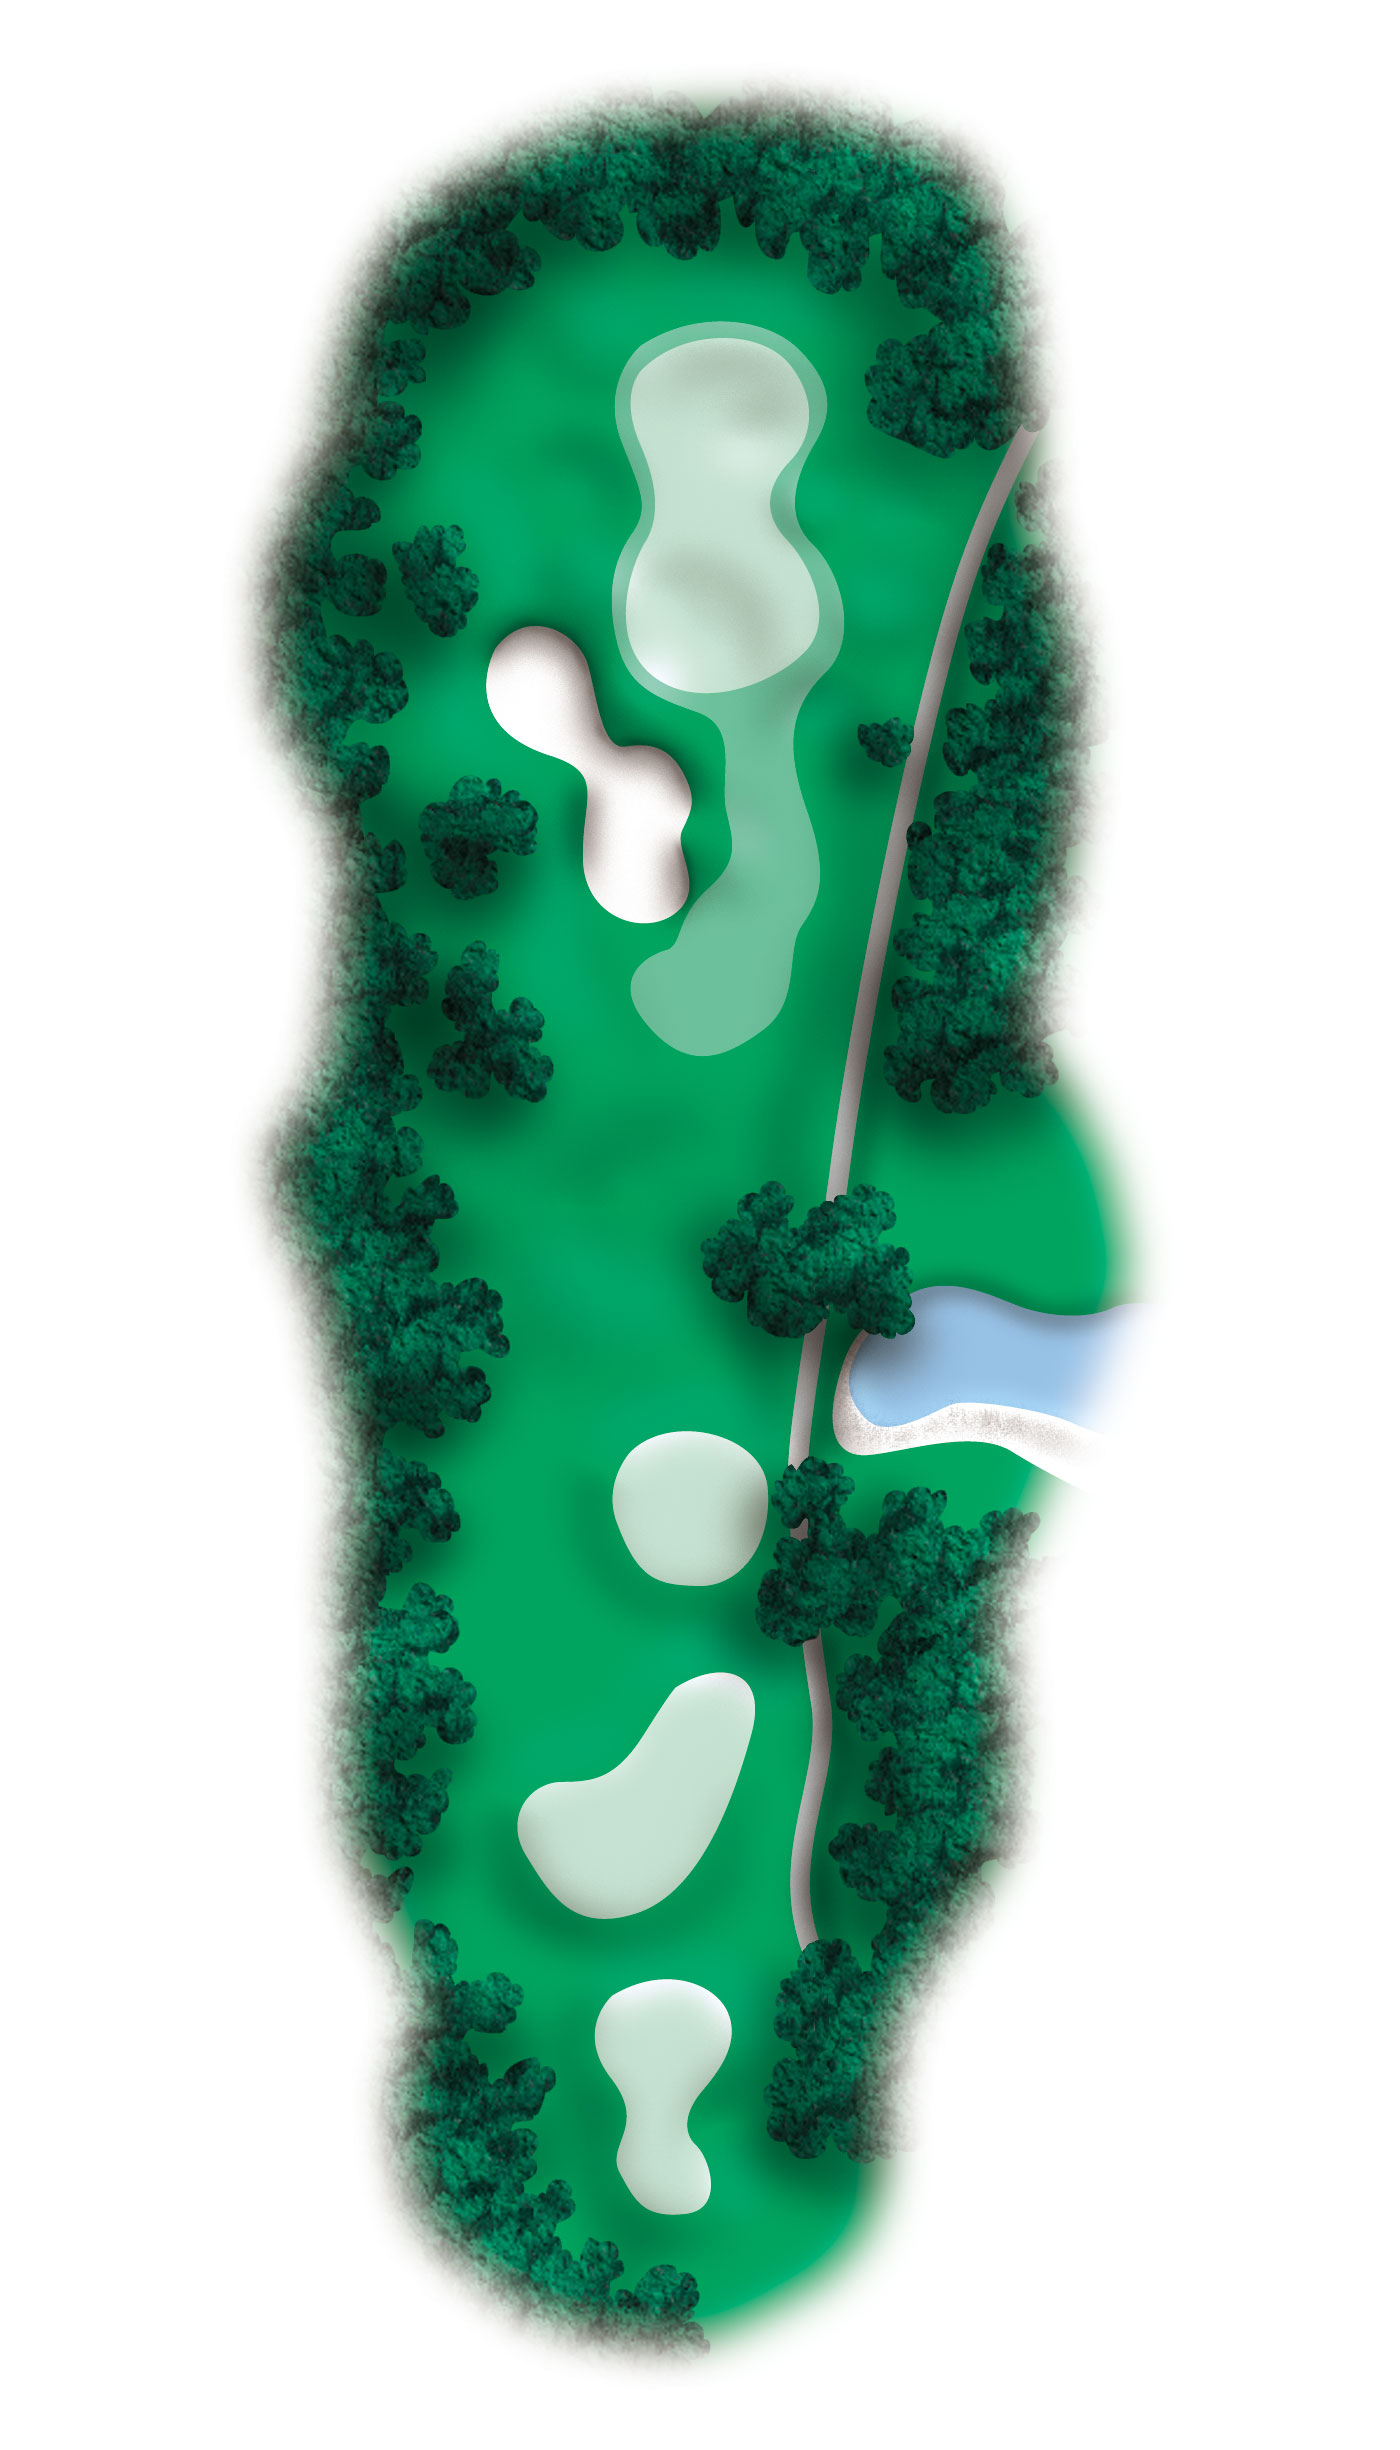 hole 5 diagram